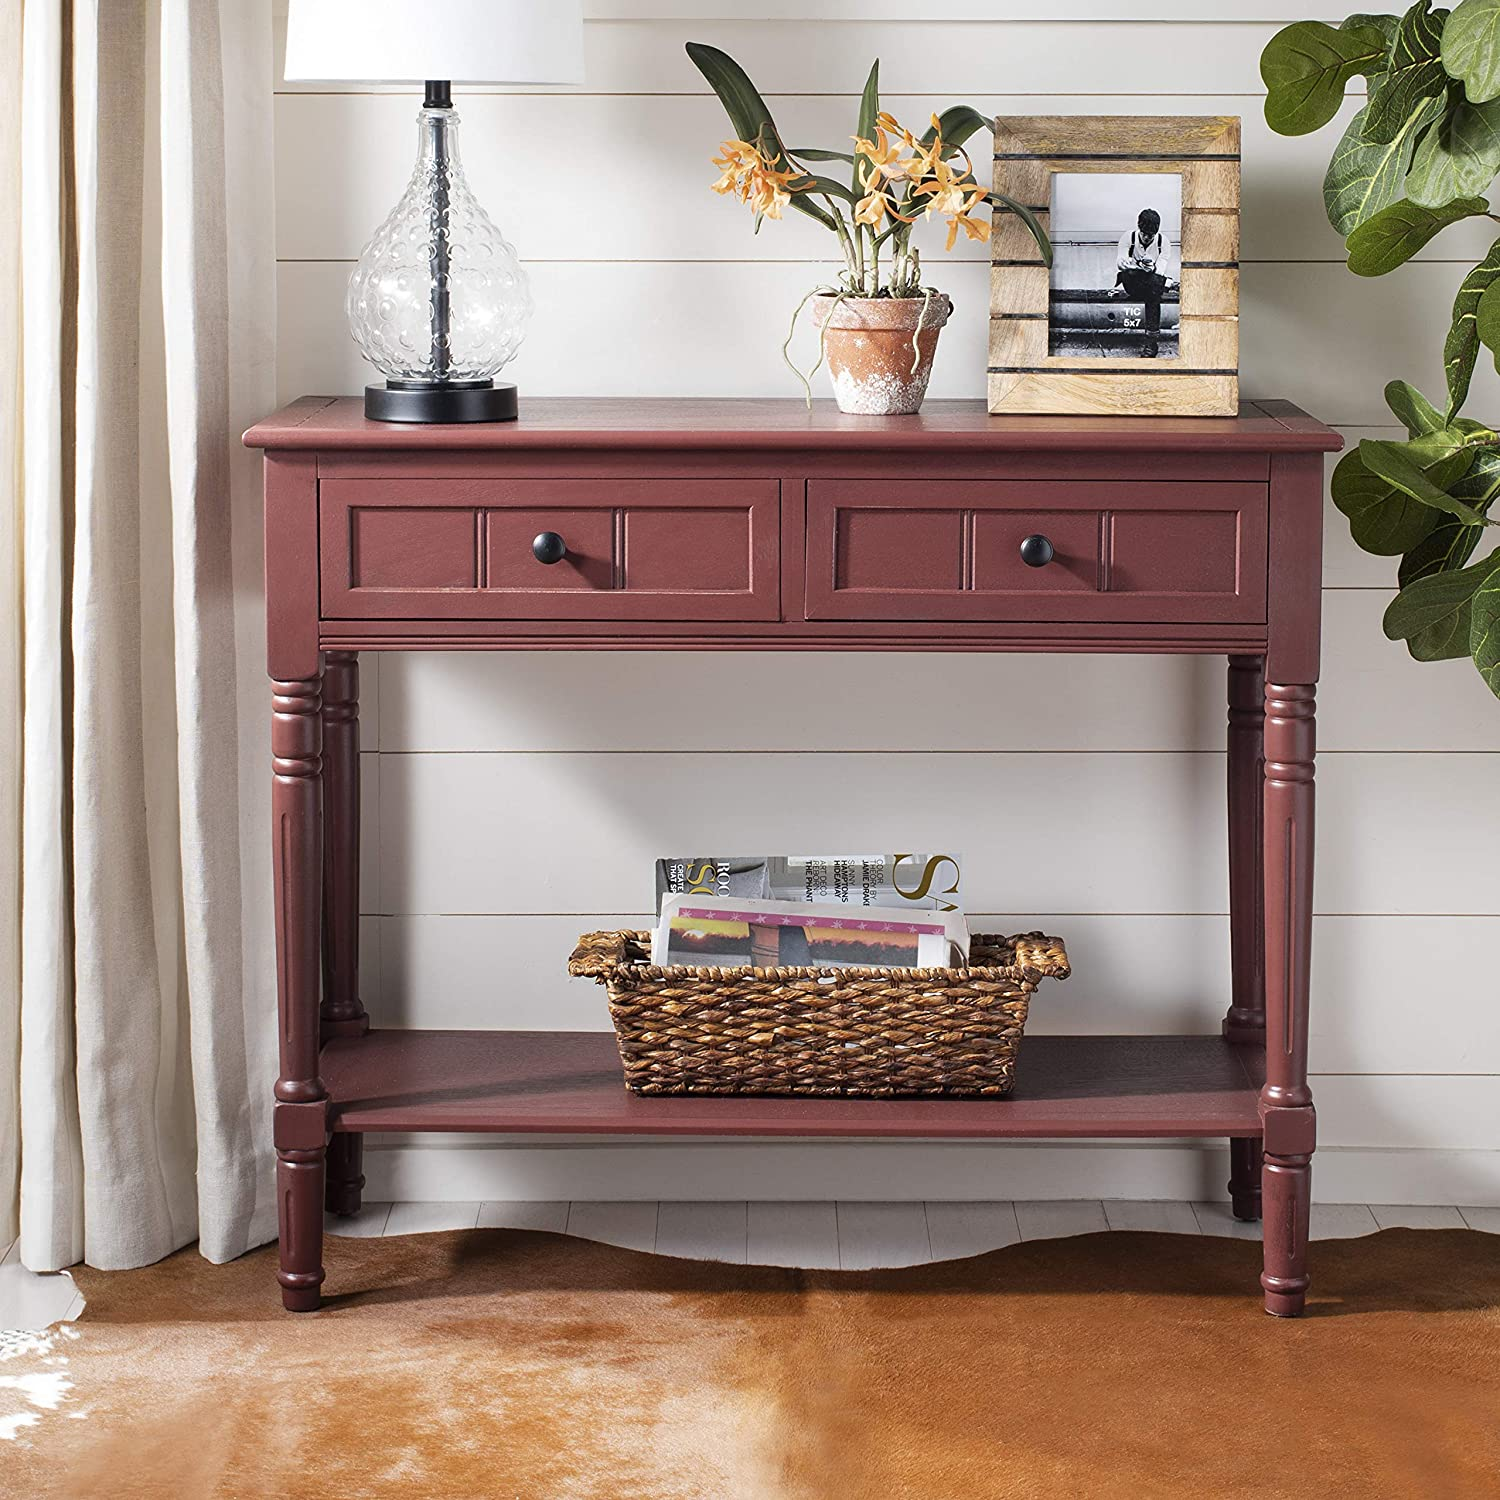 Safavieh American Homes Collection Samantha Red 2-Drawer Console Table